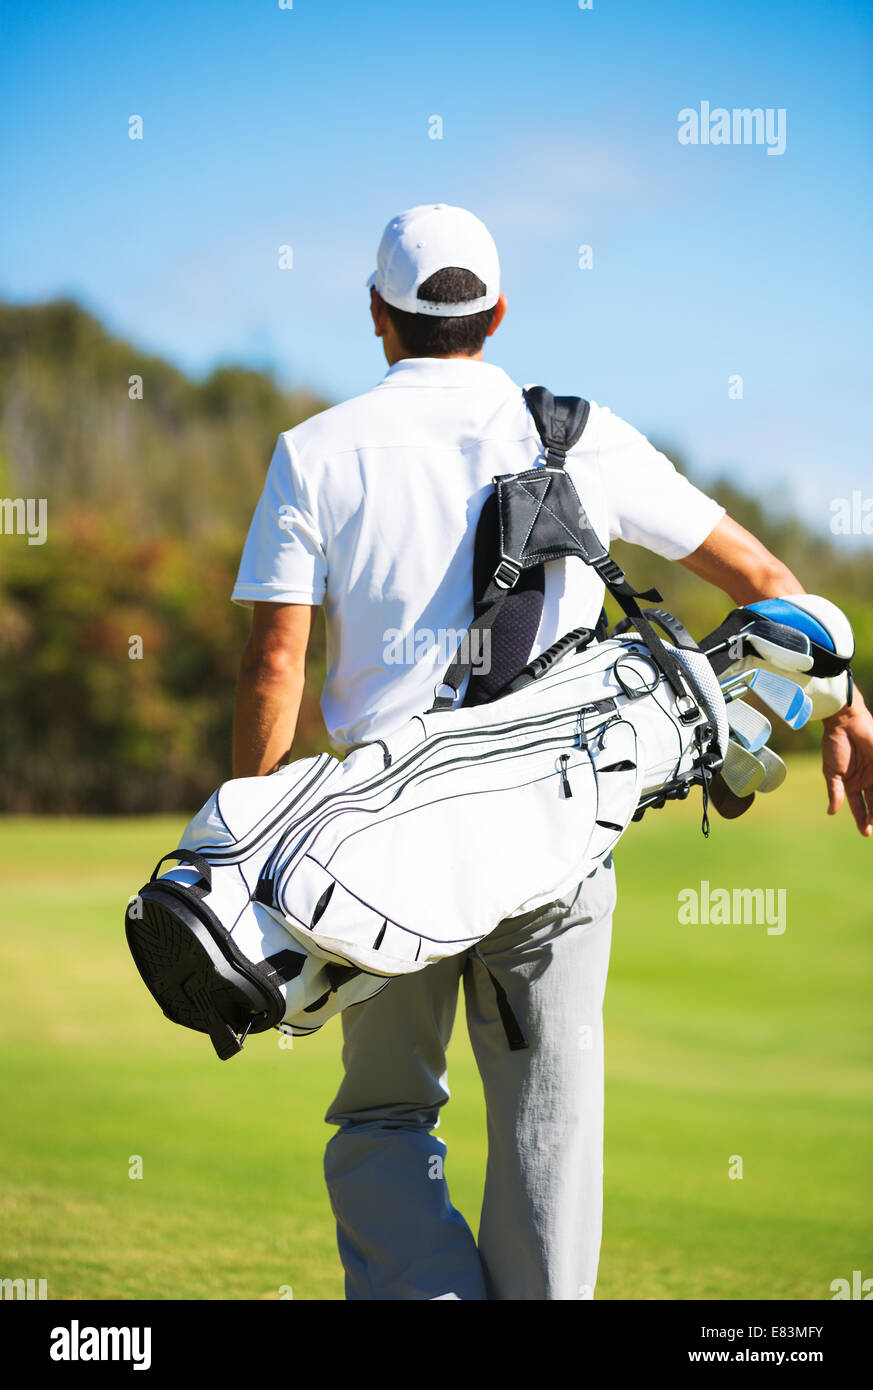 Golfer with Golf Bag Walking down the Course - Stock Image